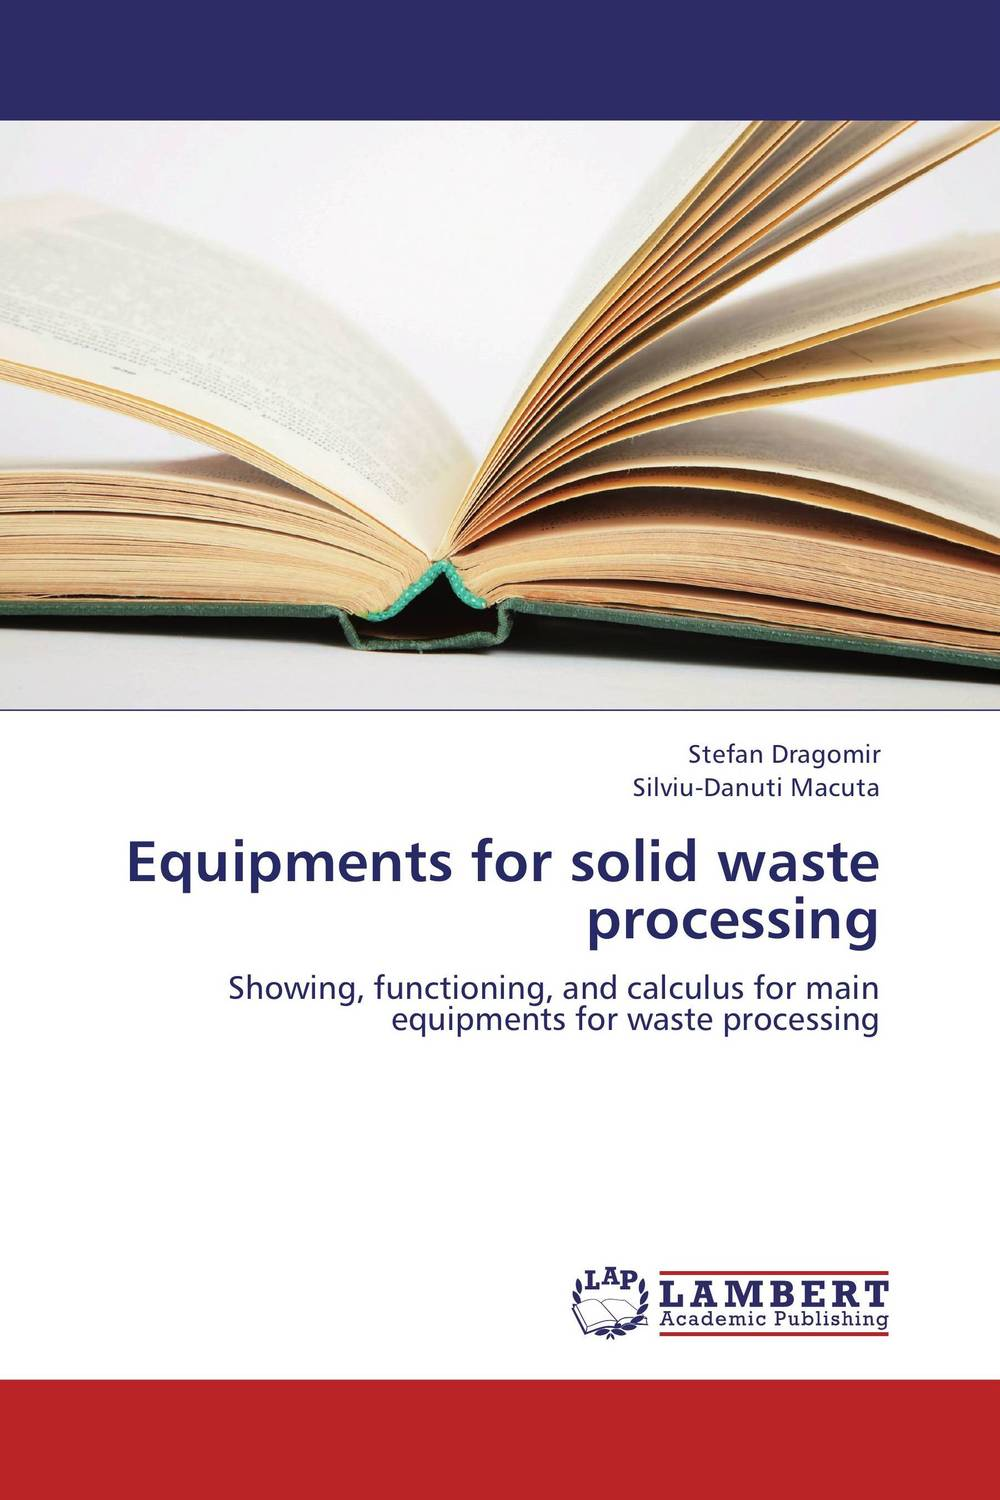 Equipments for solid waste processing thermo operated water valves can be used in food processing equipments biomass boilers and hydraulic systems